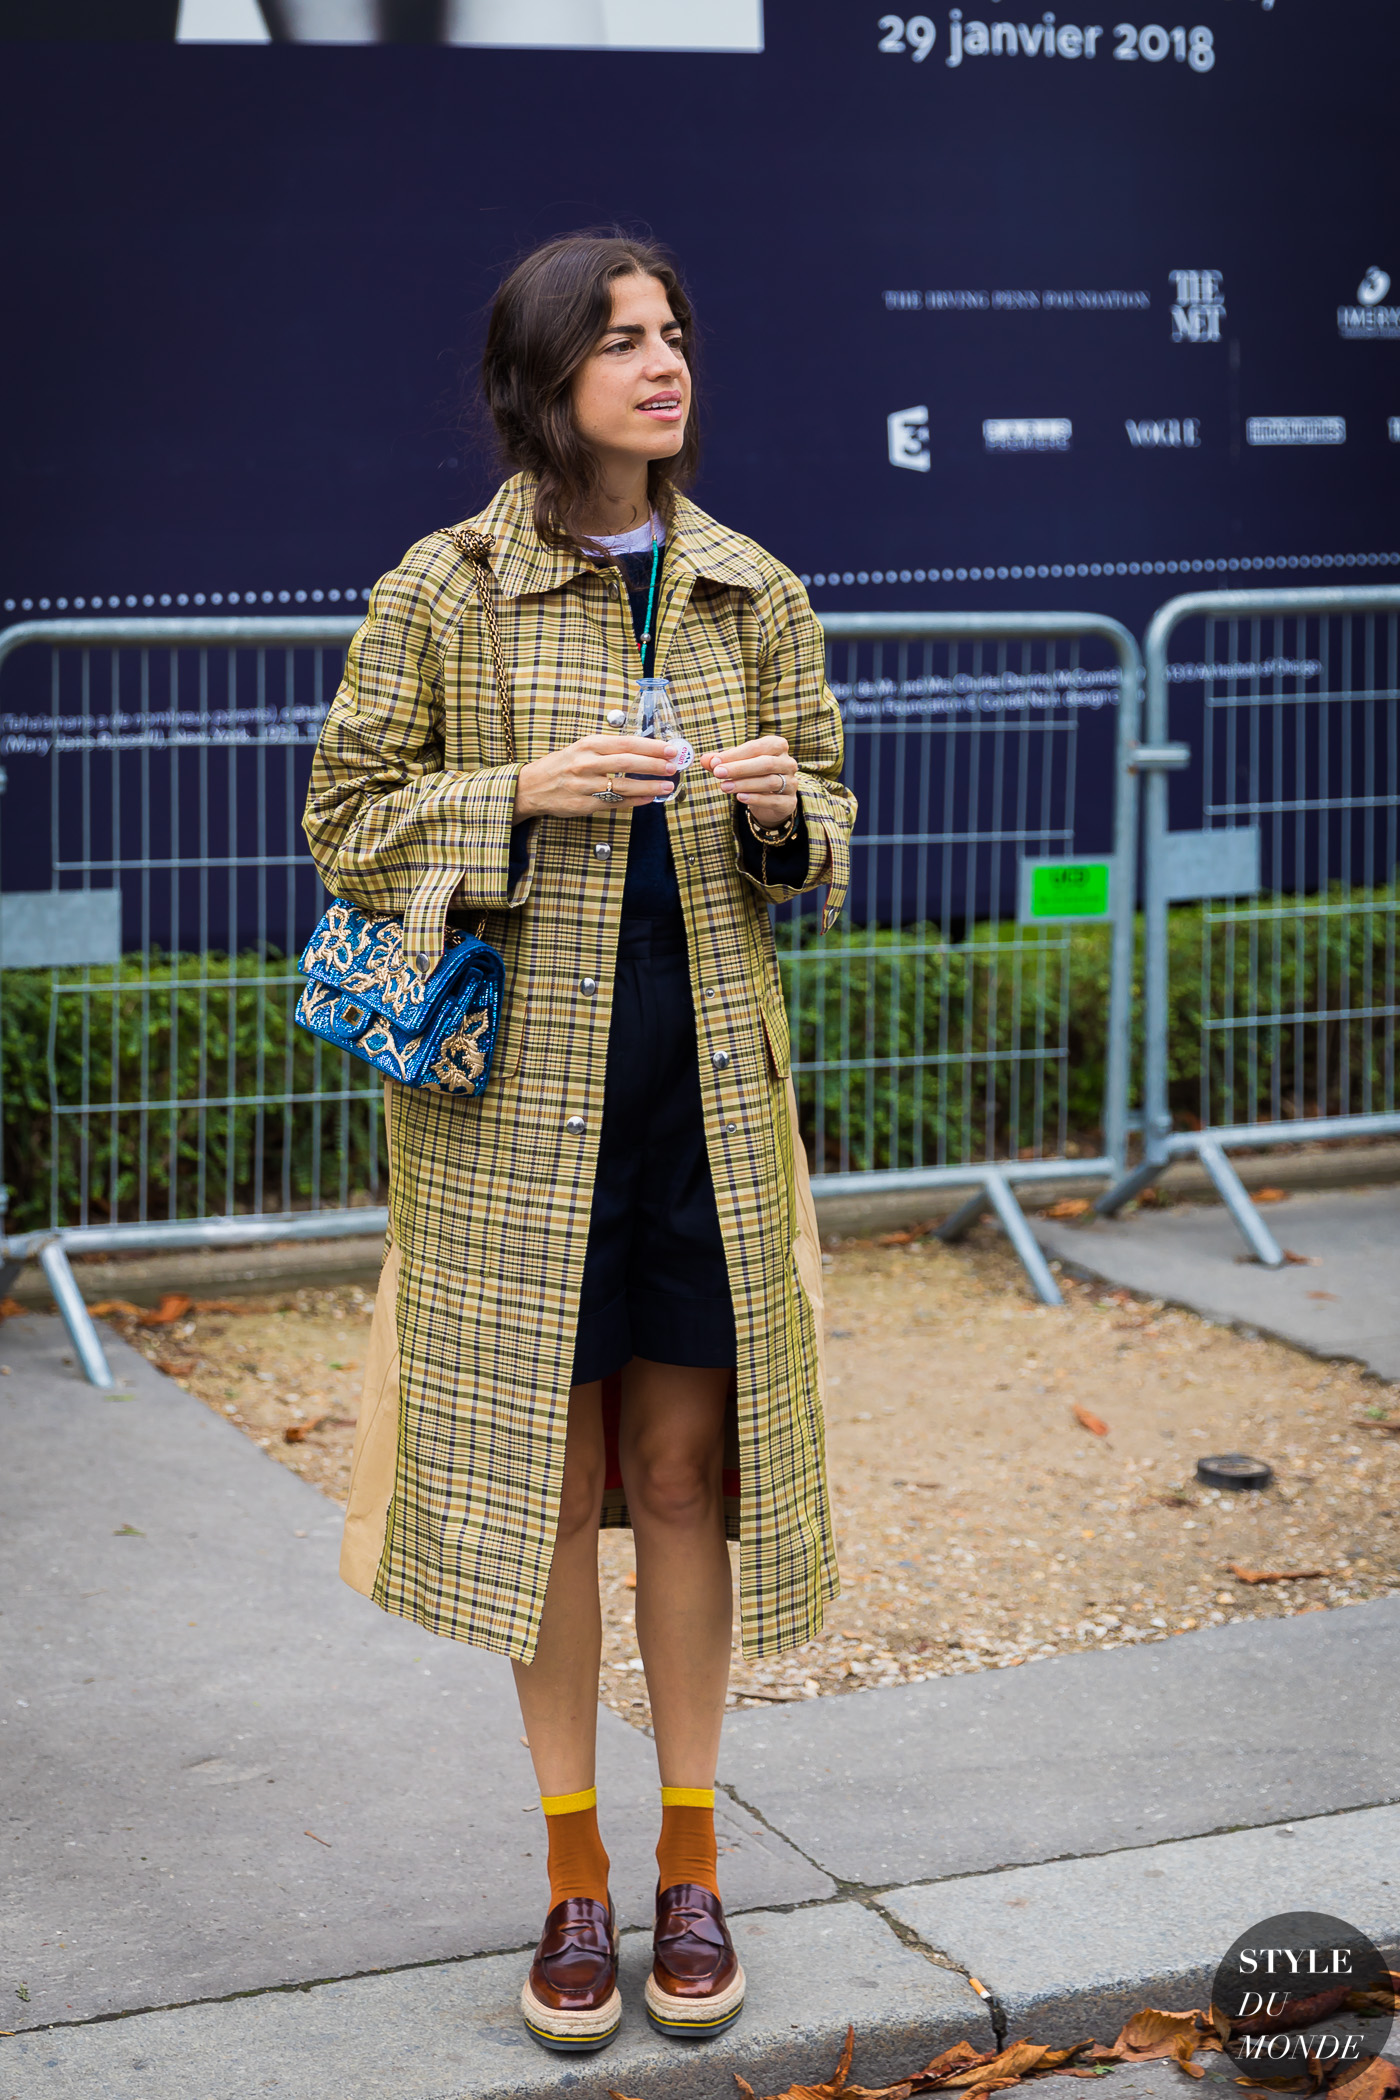 Leandra-Medine-Cohen-by-STYLEDUMONDE-Street-Style-Fashion-Photography_48A0709.jpg